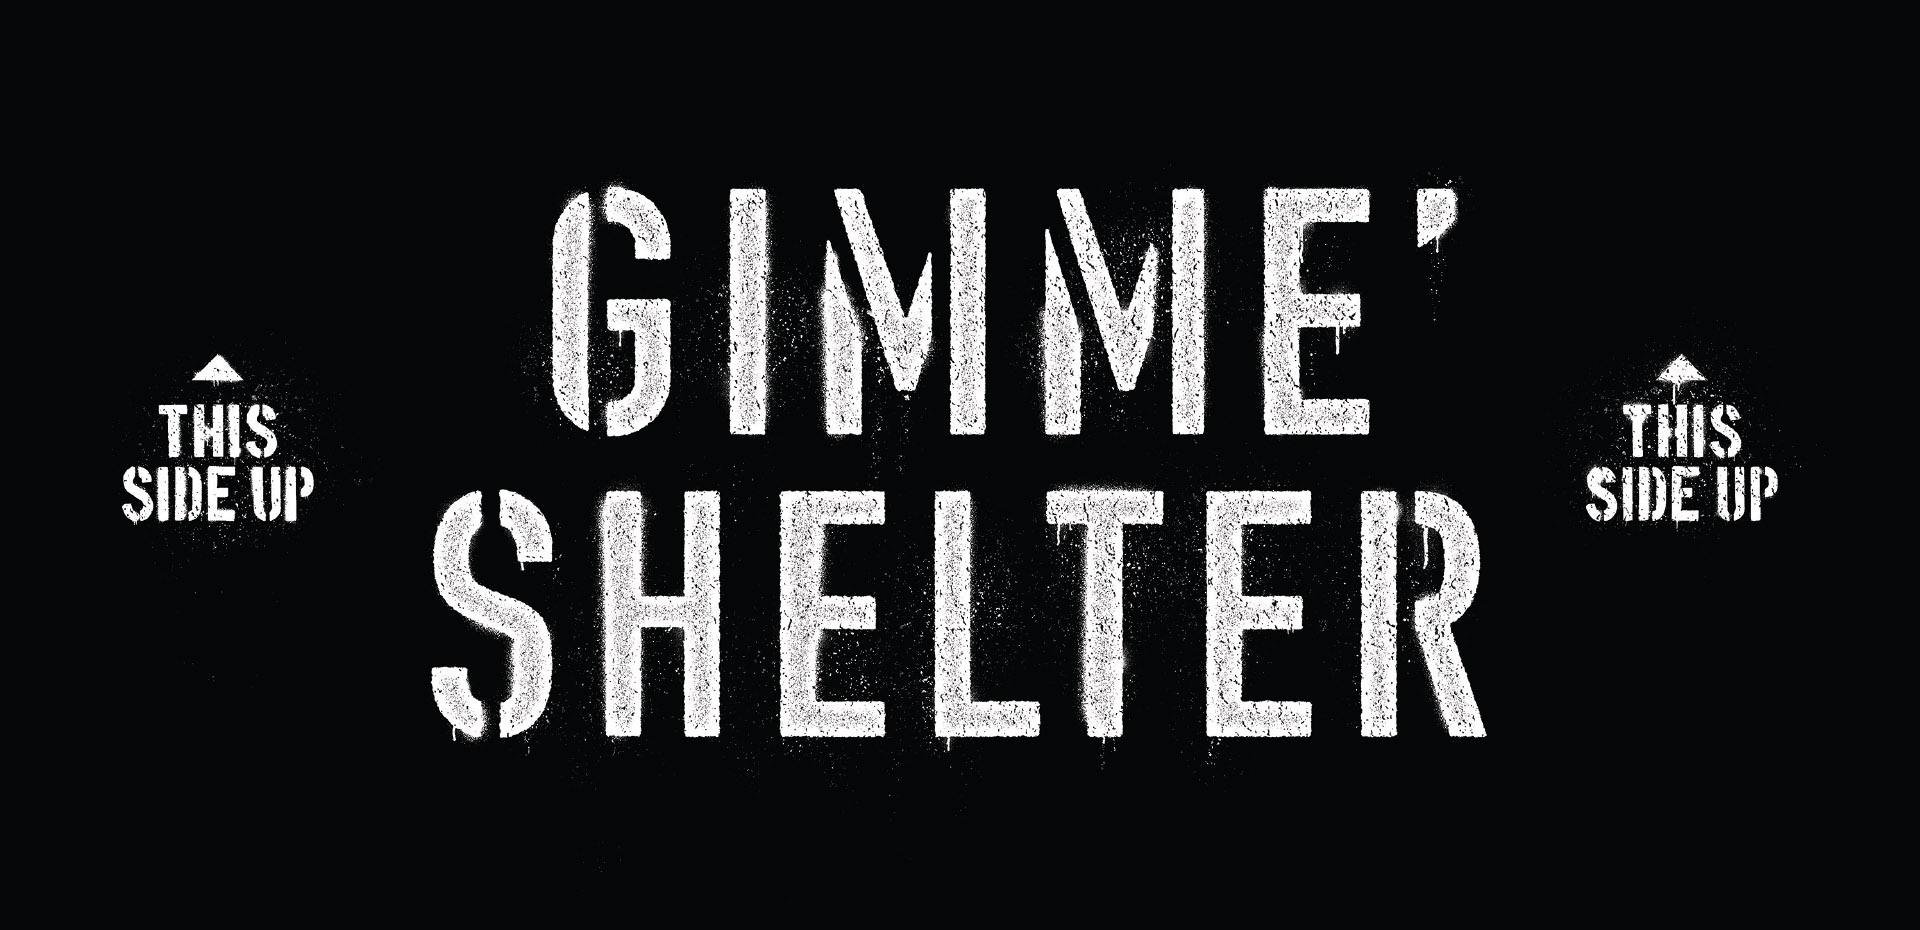 stenciled typography that says 'GIMME SHELTER'